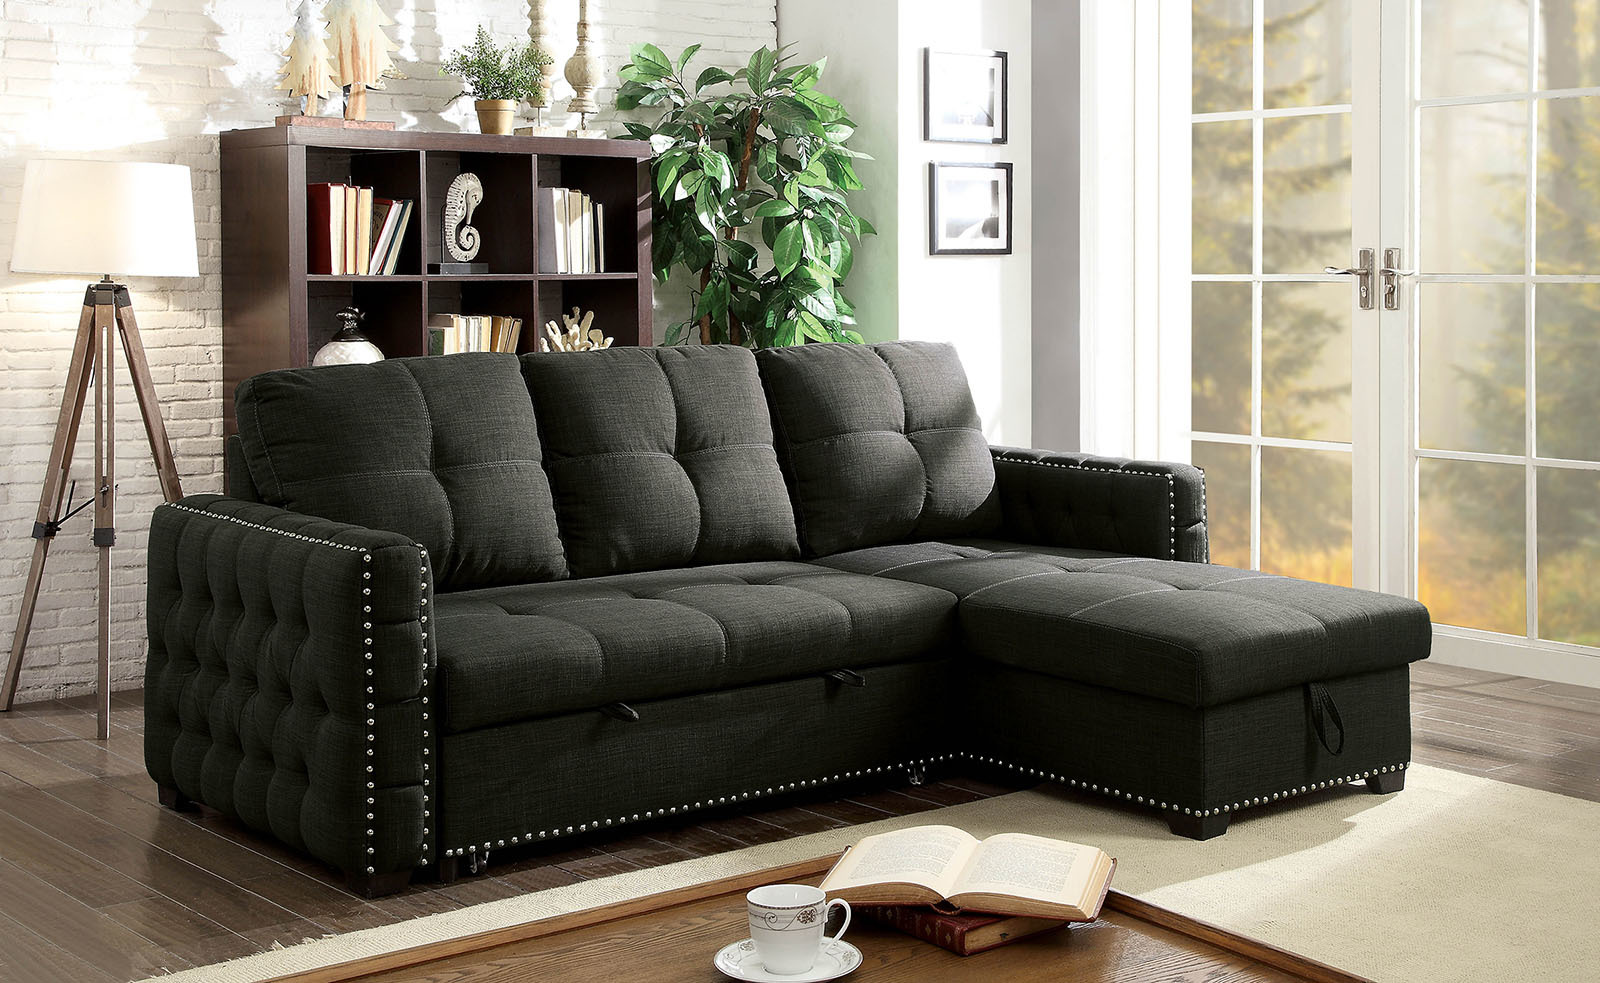 DEMI SECTIONAL $899.00